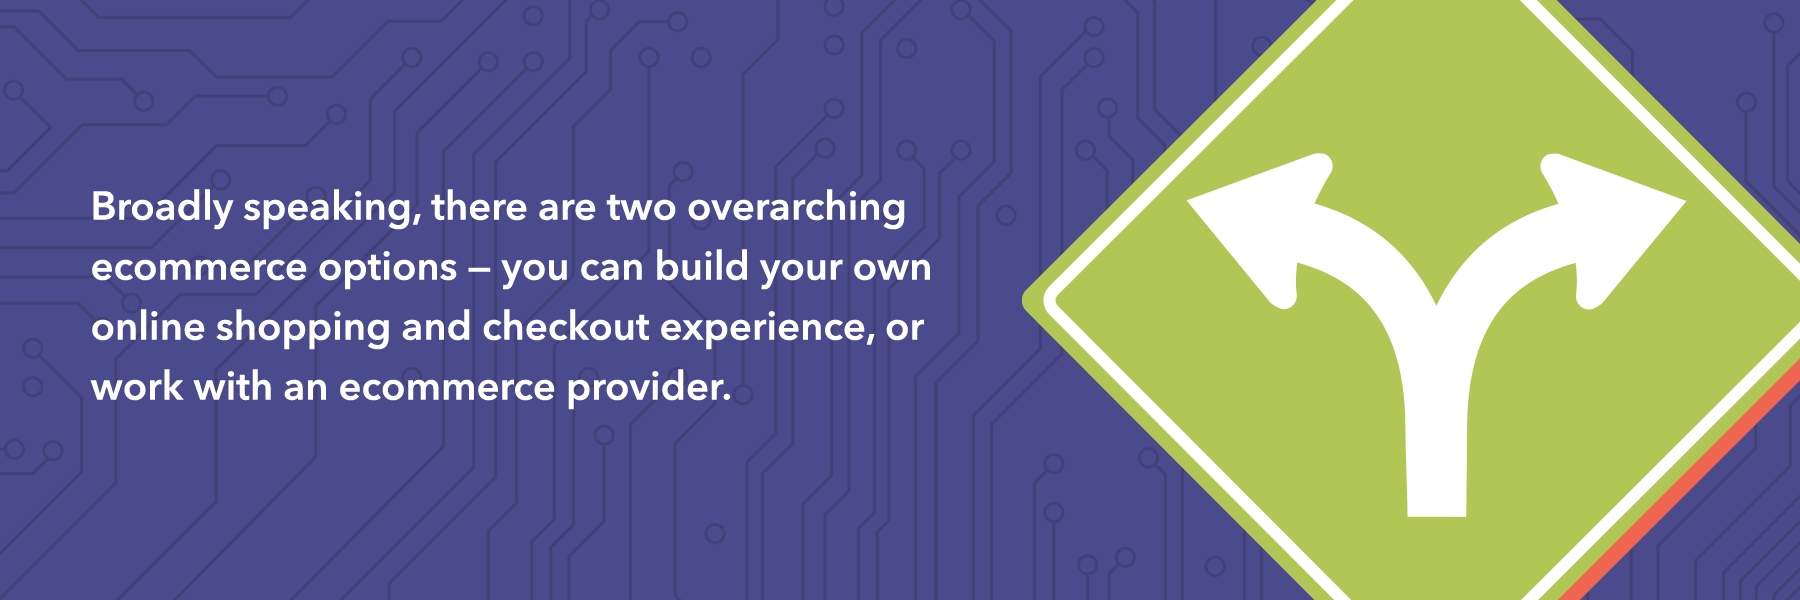 You need to determine if it's better to build your own online shopping experience or work with an ecommerce provider.